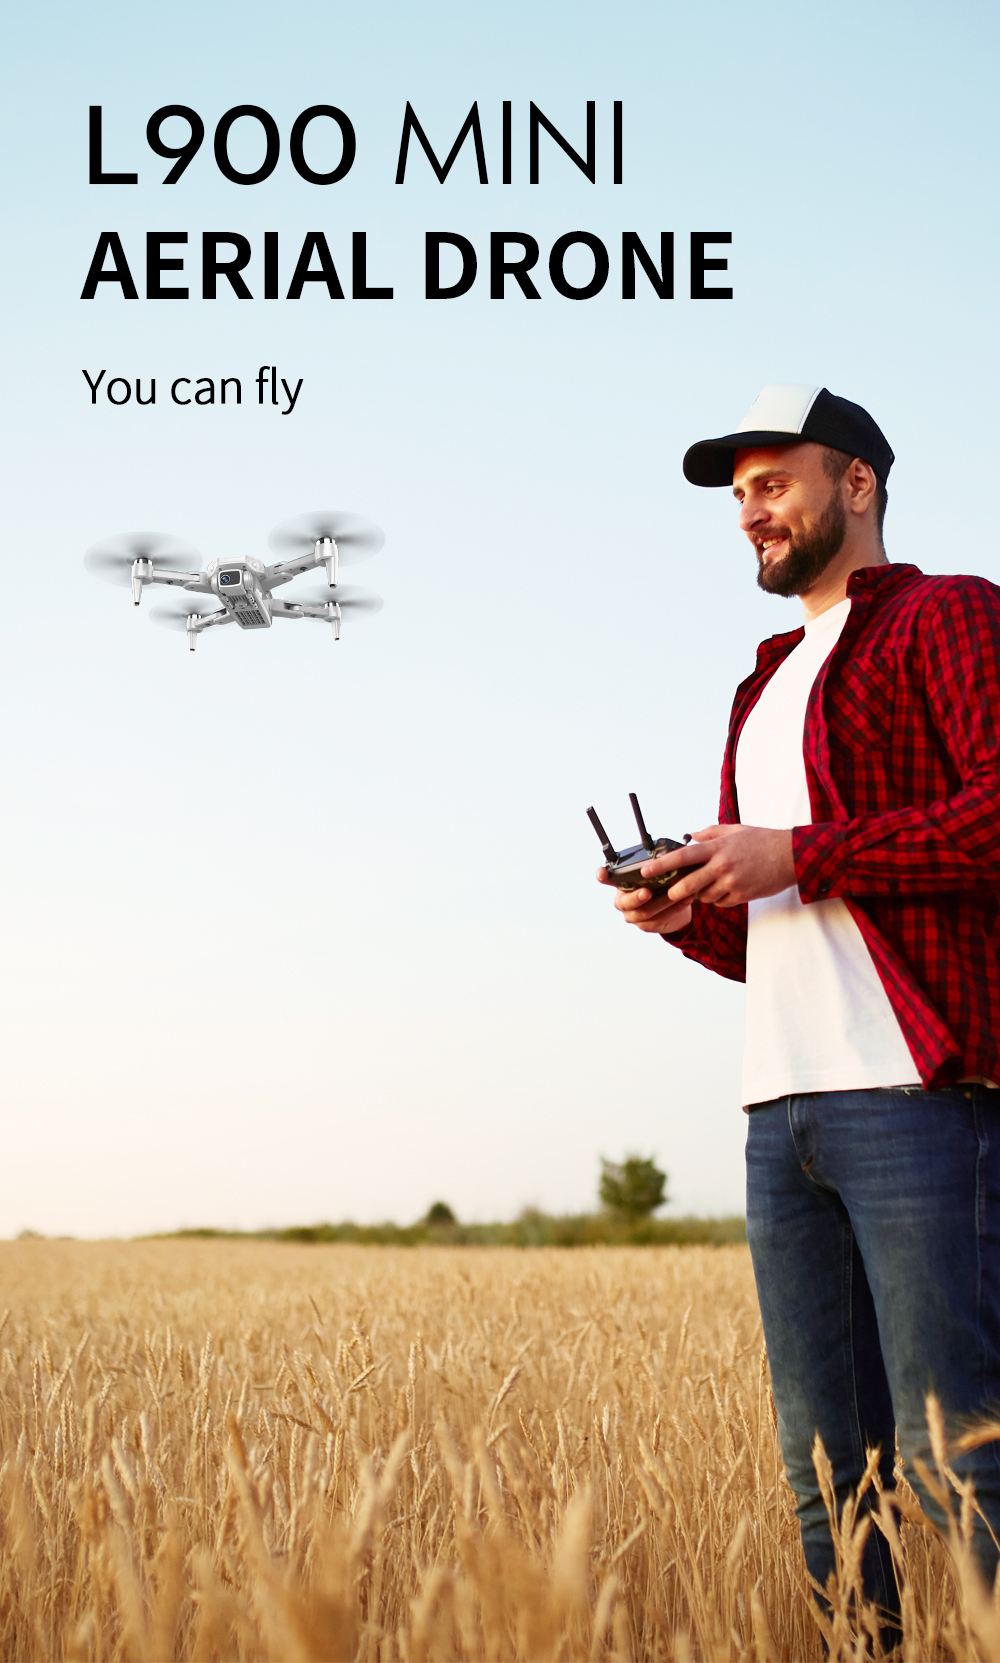 H8e68f2fa98974646944cc9de757a4ff4f - L900 Pro Drones 4K HD Dual Camera GPS 5G WIFI FPV Quadcopter Brushless Motor Rc Distance 1.2km Transmission Helicopter Toys